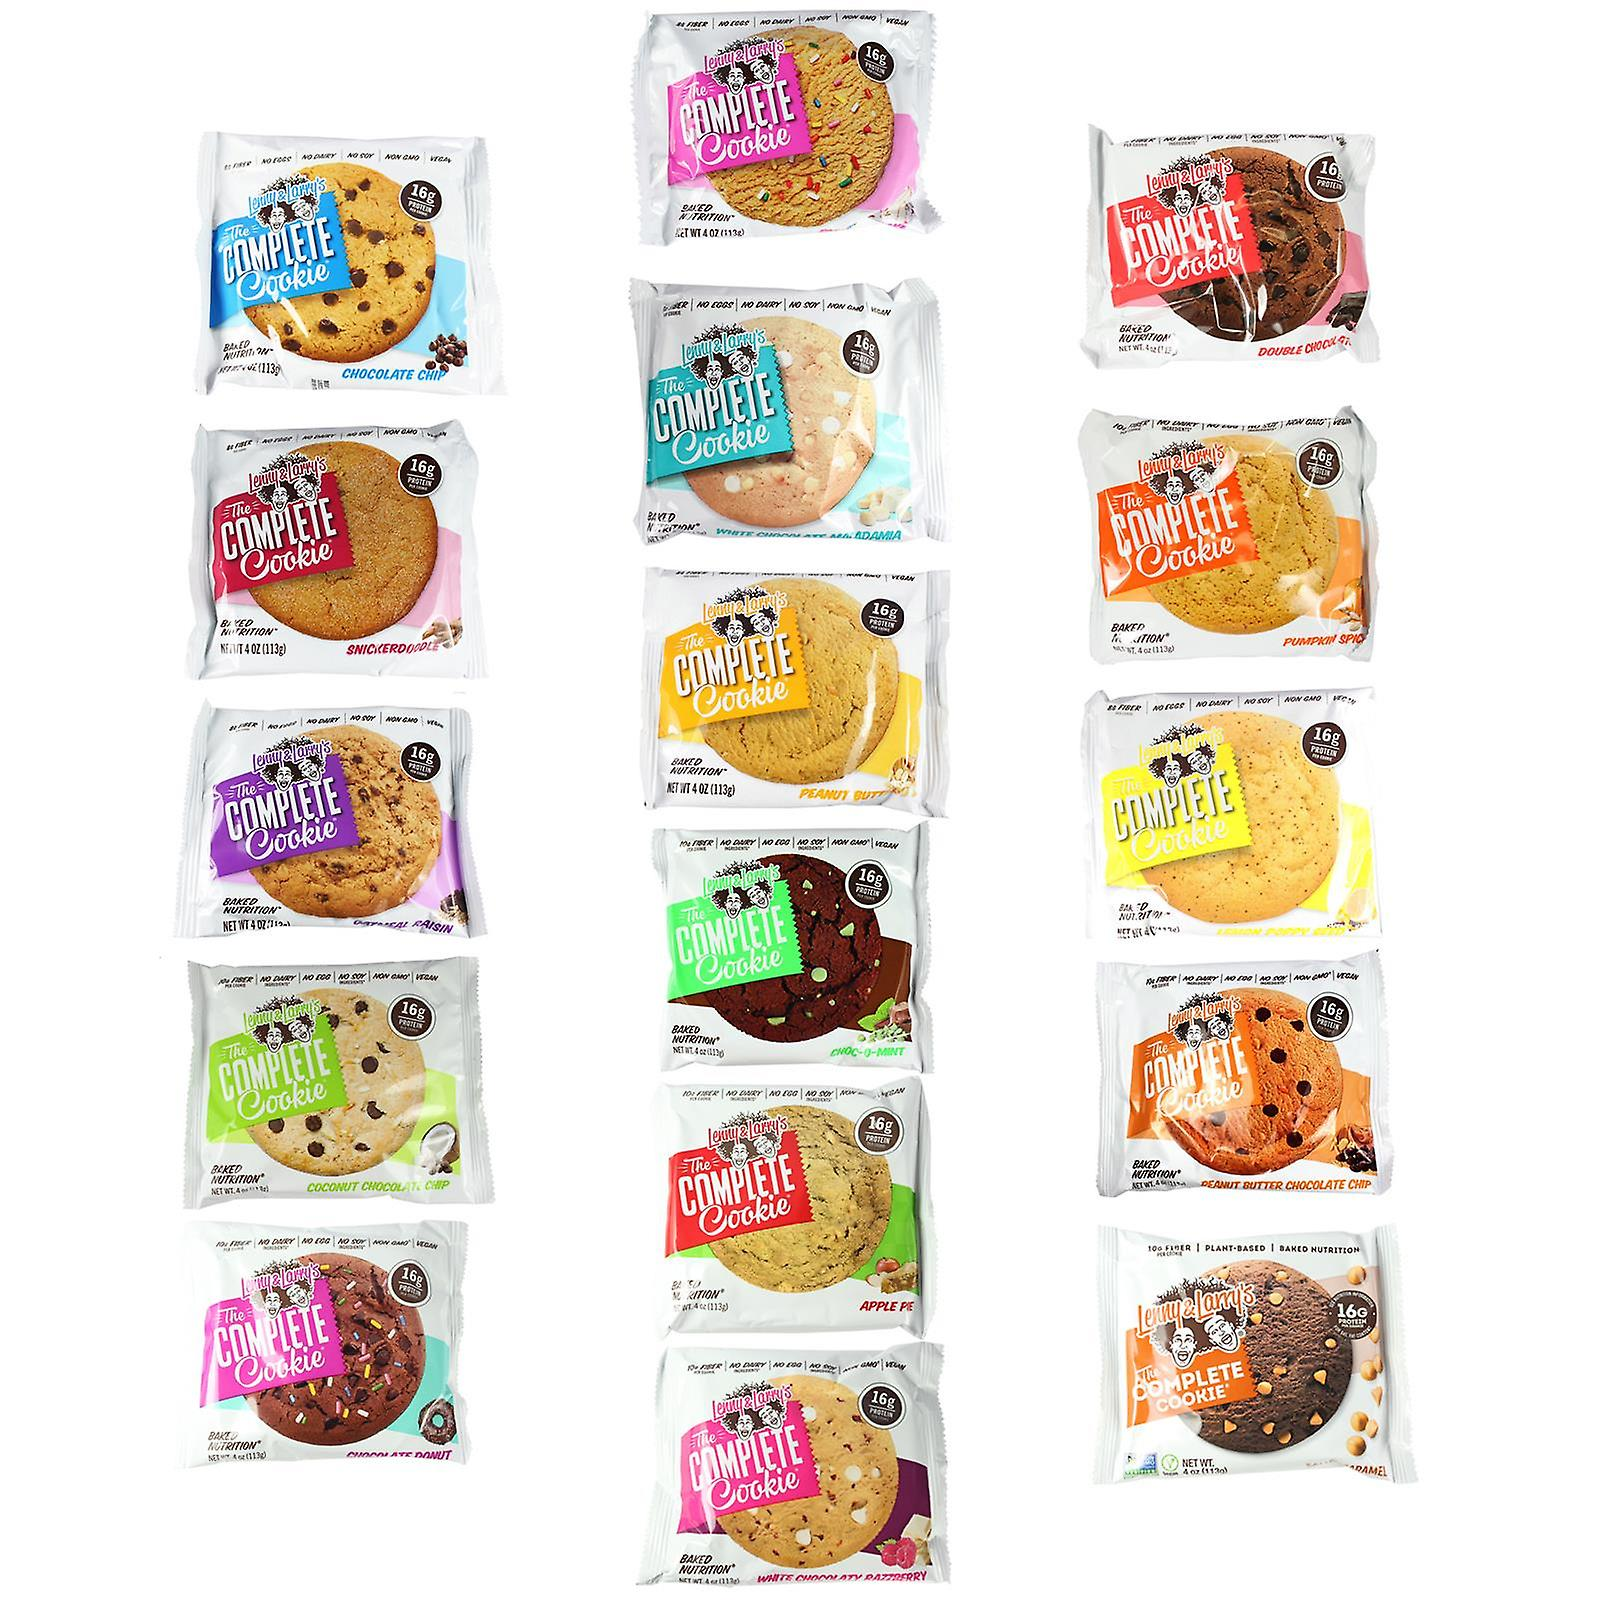 Lenny & Larry's Complete Cookies In Flavour Mixed Flavours Box Of 12 Cookies